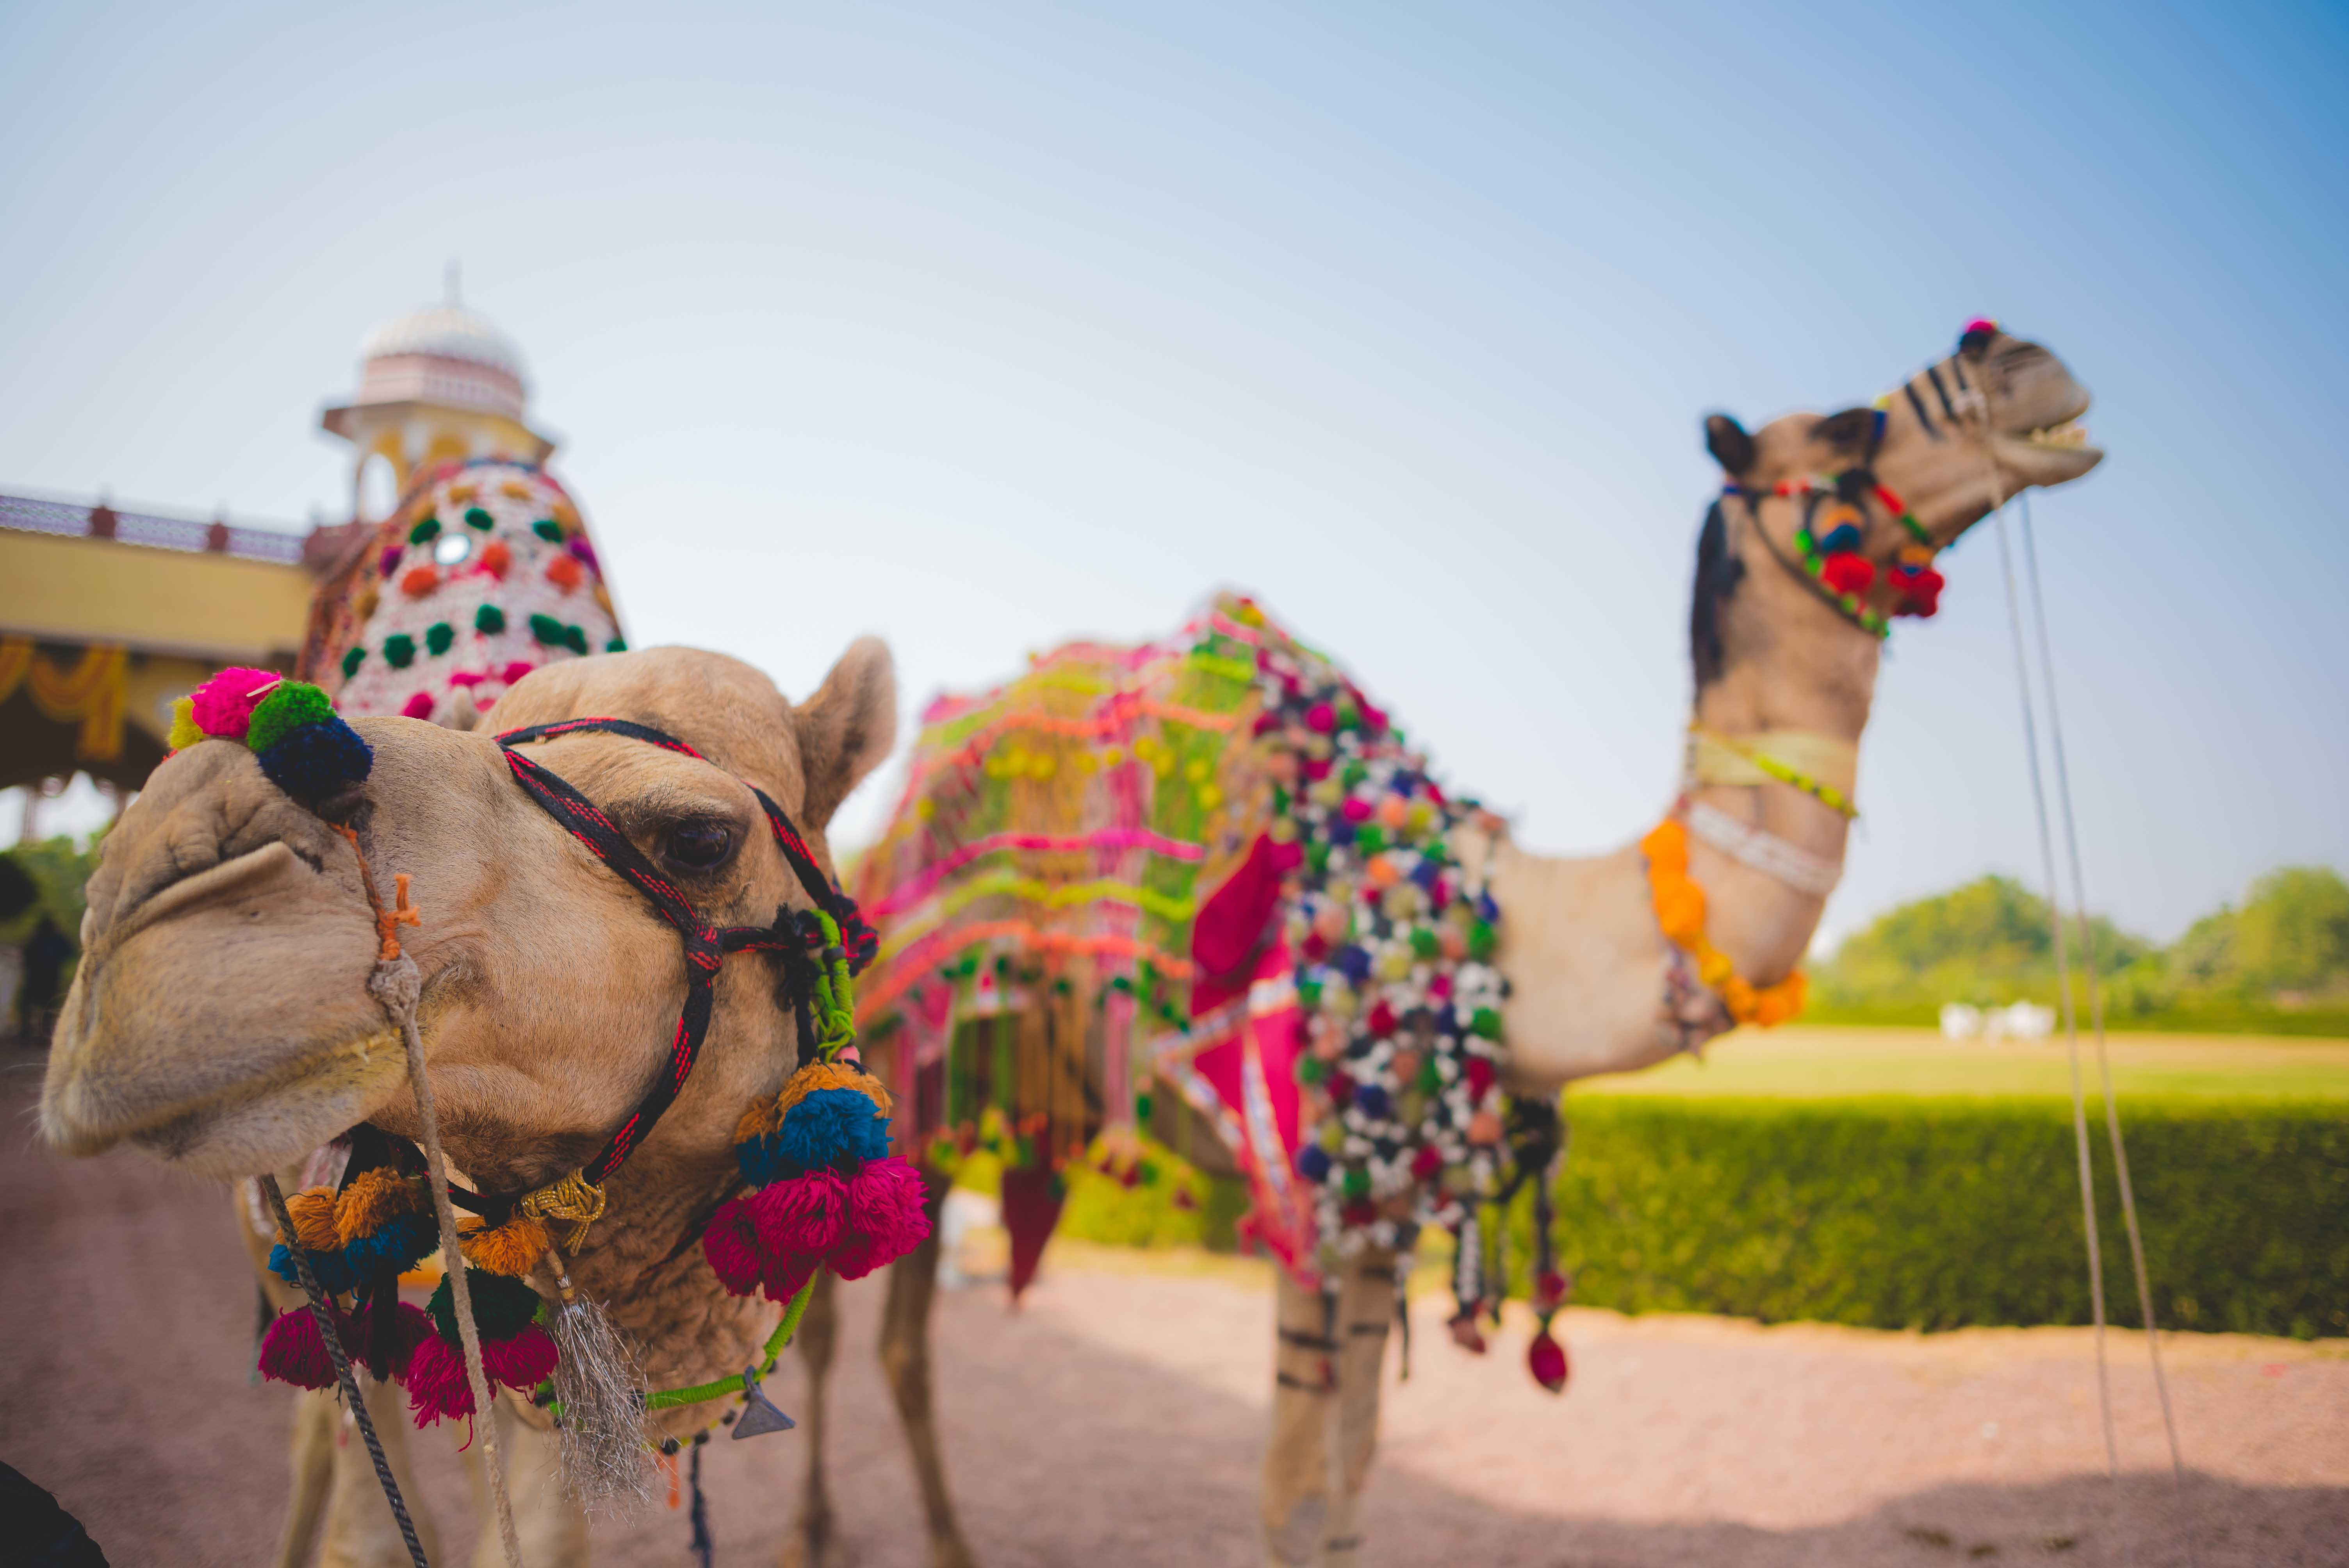 Exotic Gujarati Wedding in Jodhpur featuring Camels